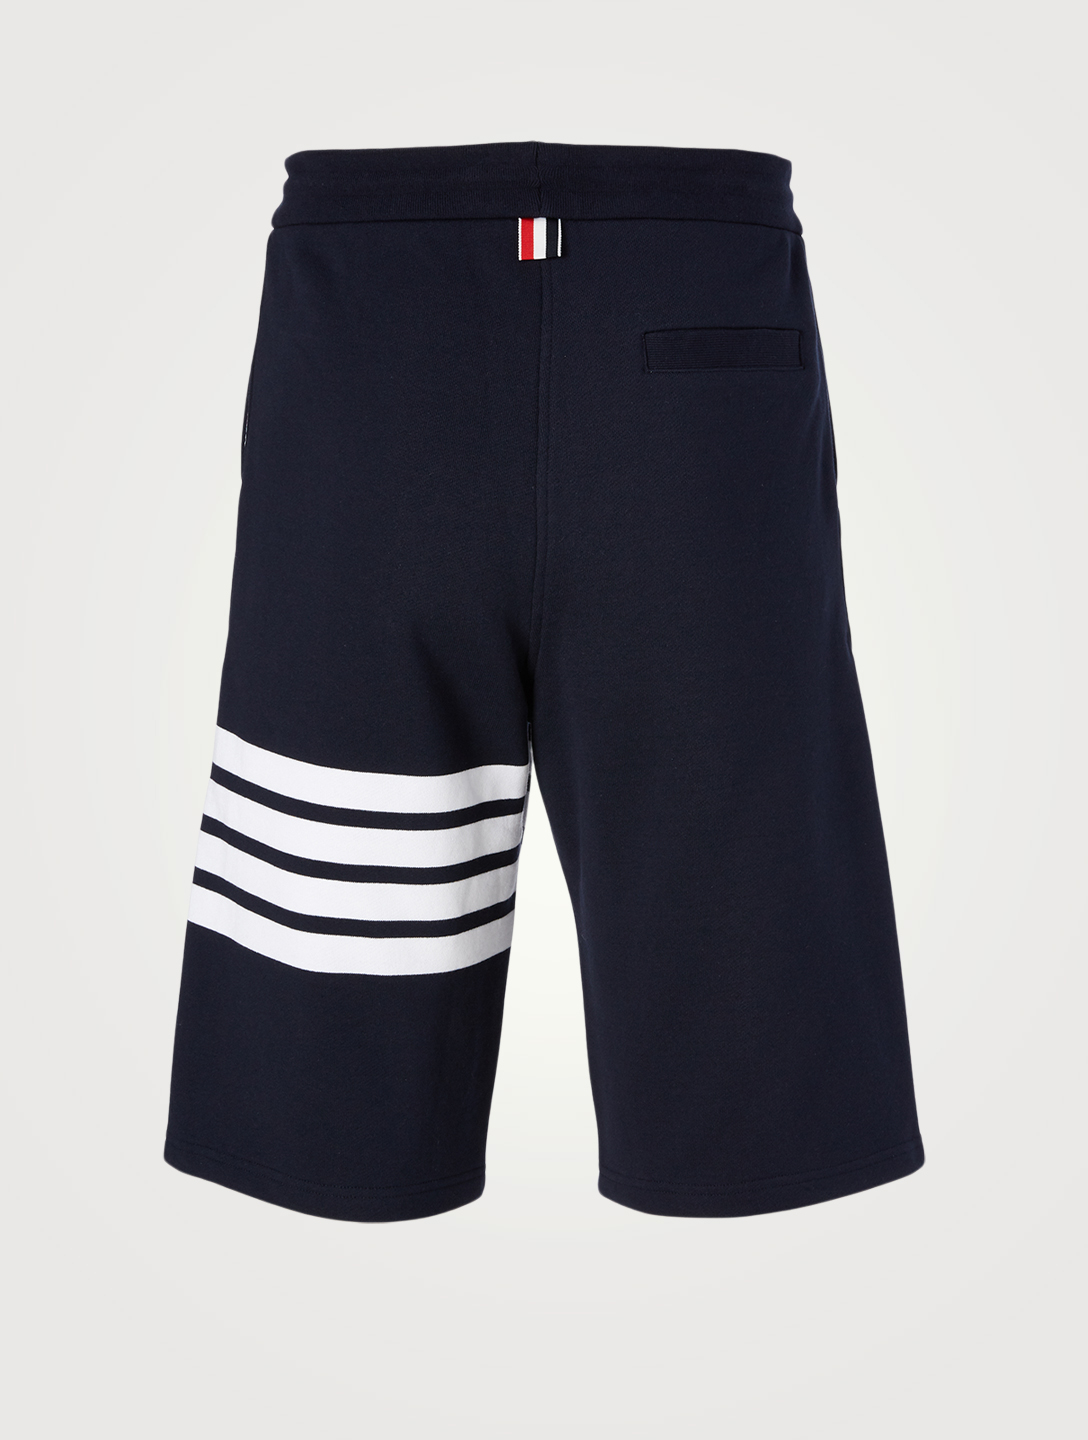 THOM BROWNE Four-Bar Jersey Shorts Men's Blue